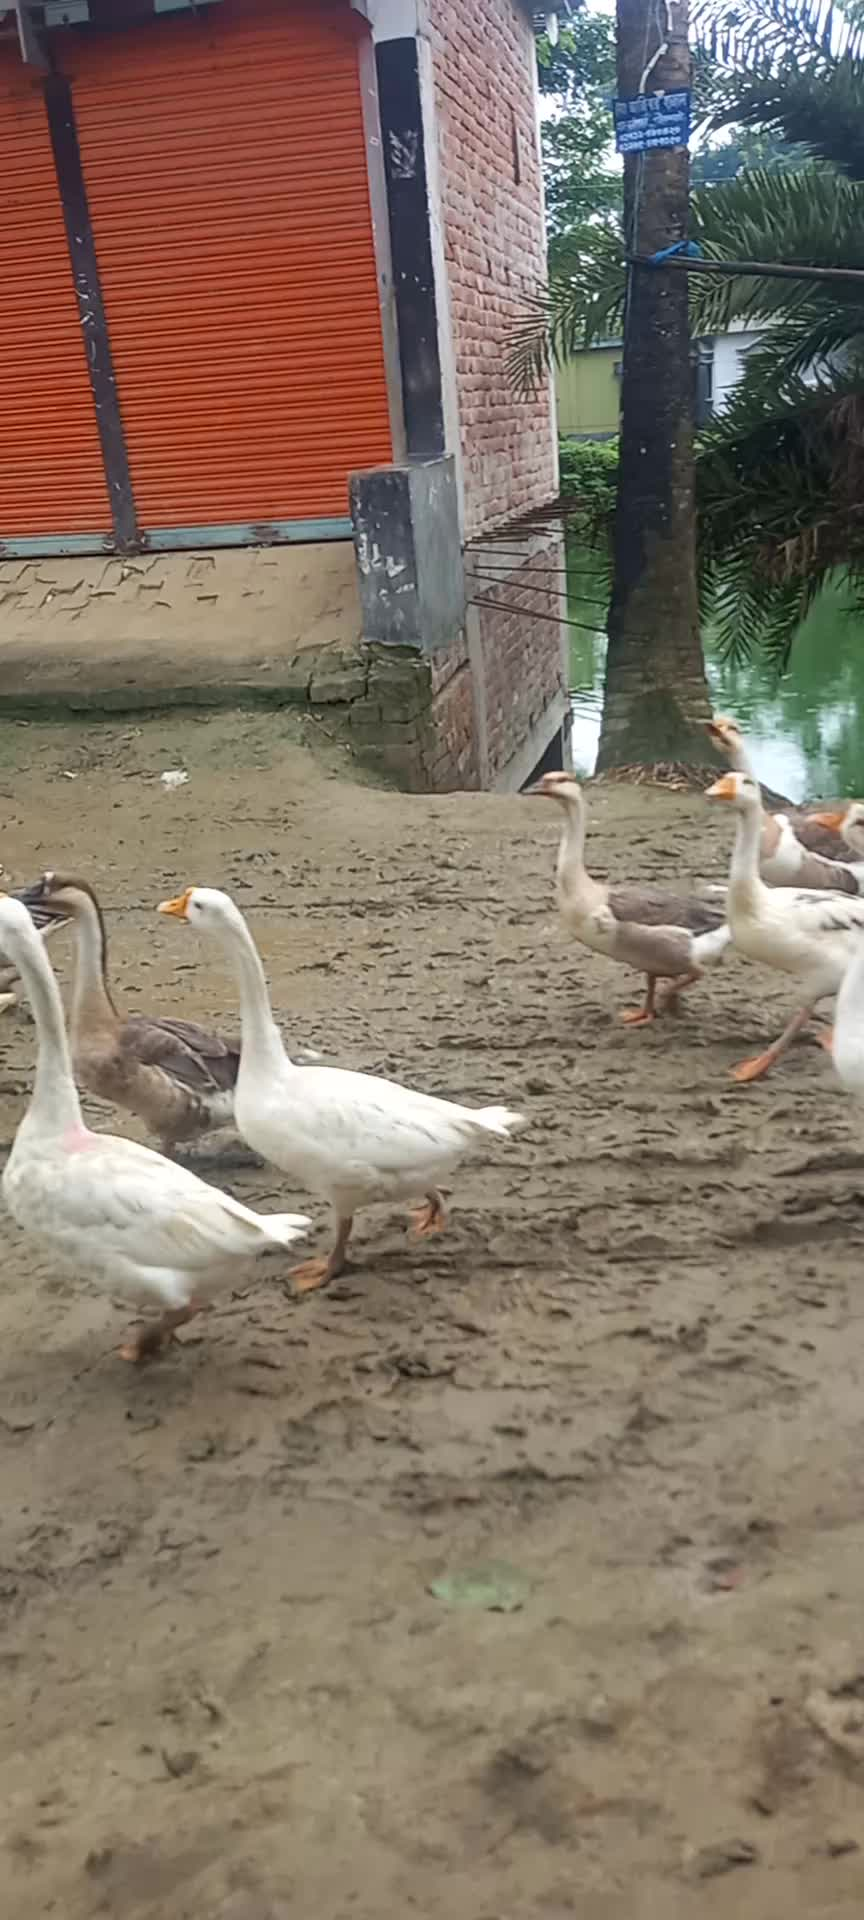 You are shown some swan scenes in the village. See how many rajas are roaming together